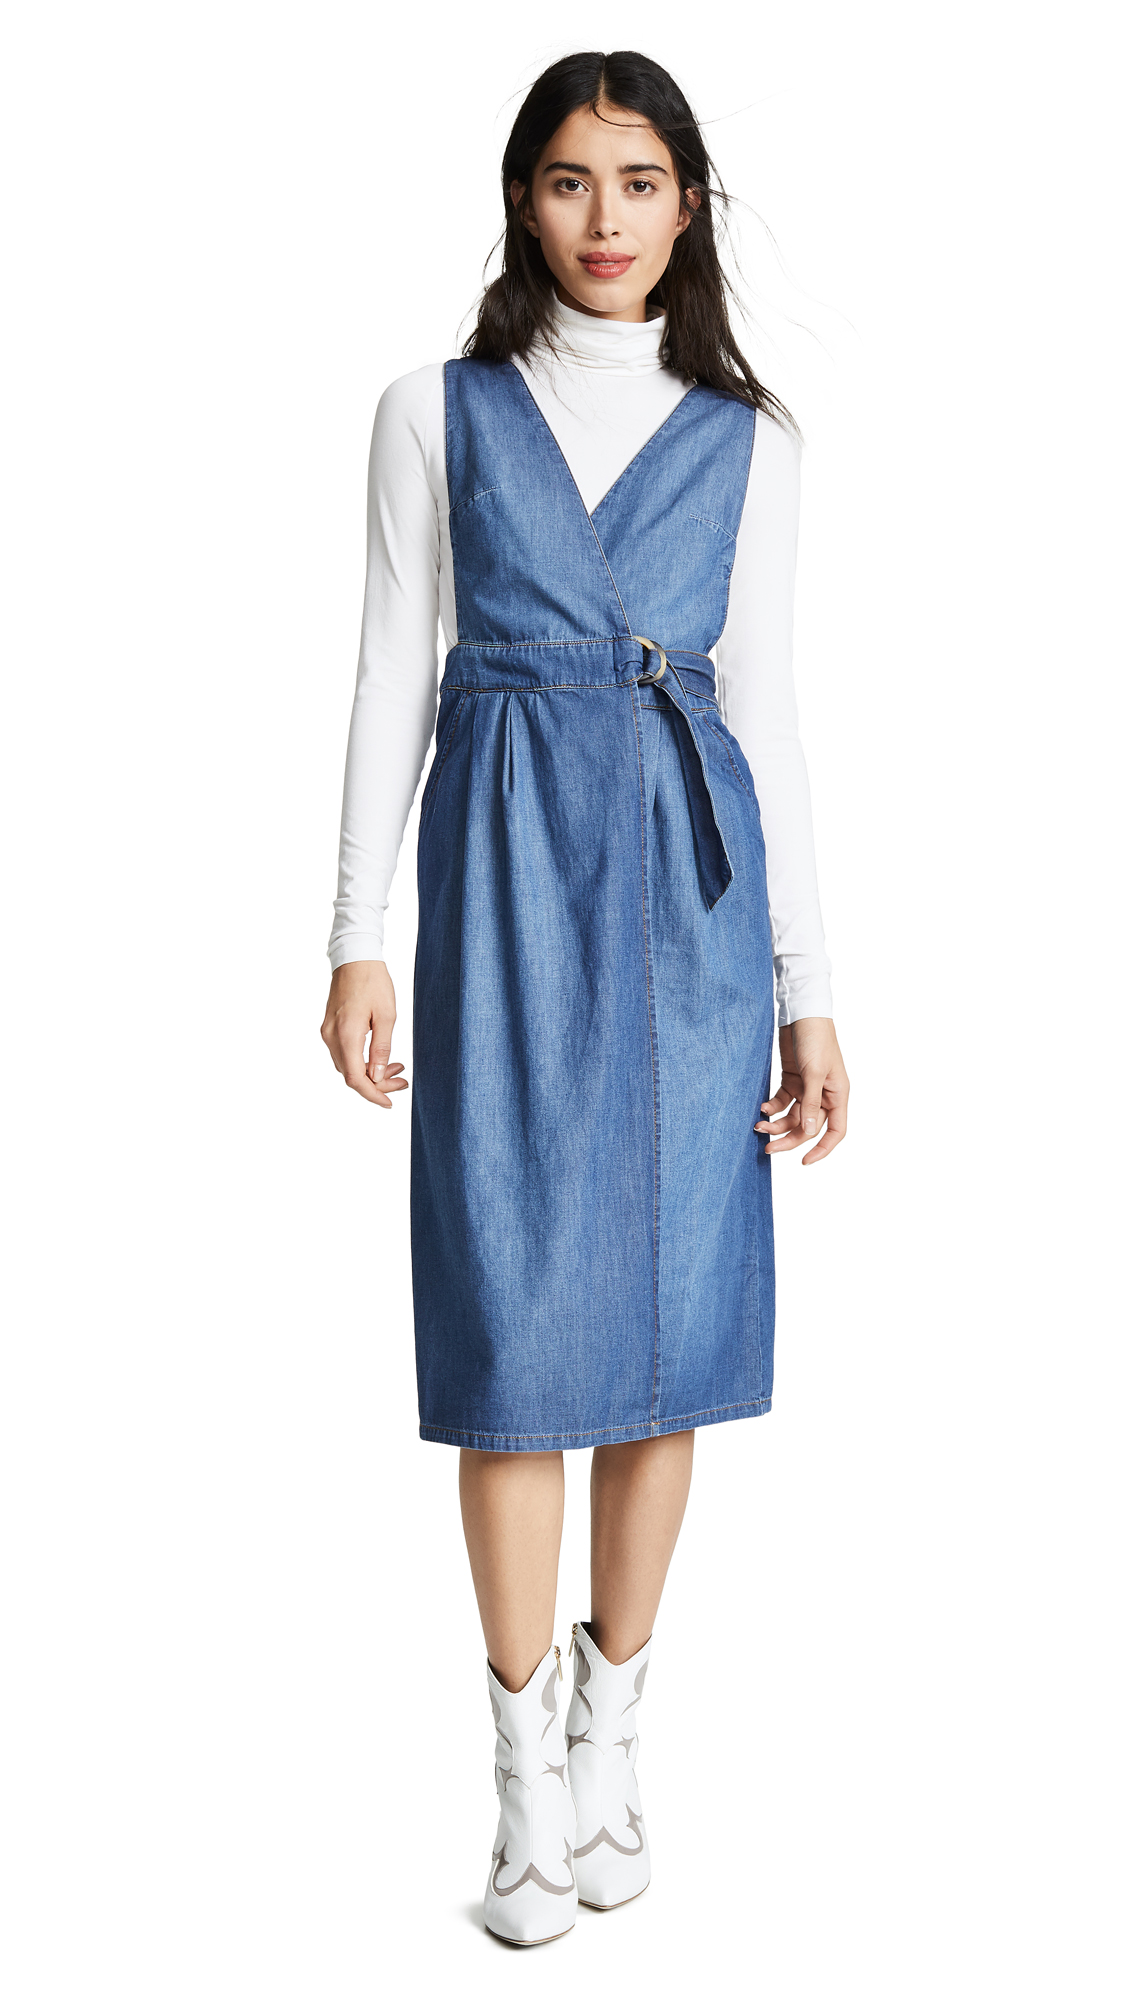 Free People Keeping My Cool Denim Dress - Denim Blue